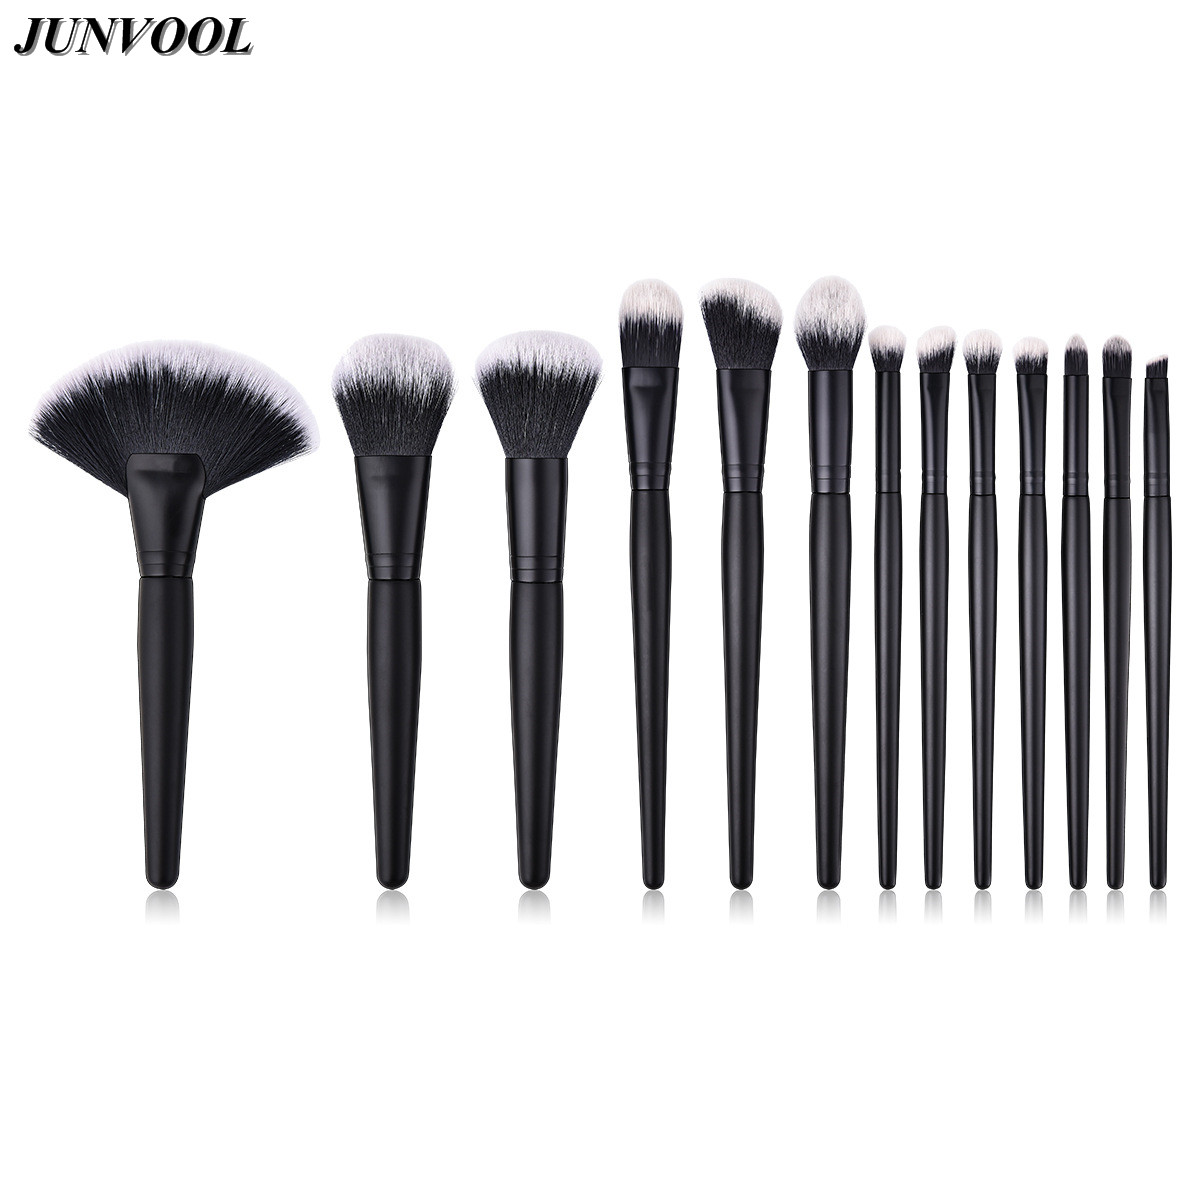 13pc Large Fan Black Makeup Brushes Set Eyeshadow Powder Foundation Concealer Blush Blending Make Up Brush Kit Flame Beauty Tool bathroom shelves orb finish wall shelf in the bathroom brass towel holder towel tack bathroom accessories towel bars 5512